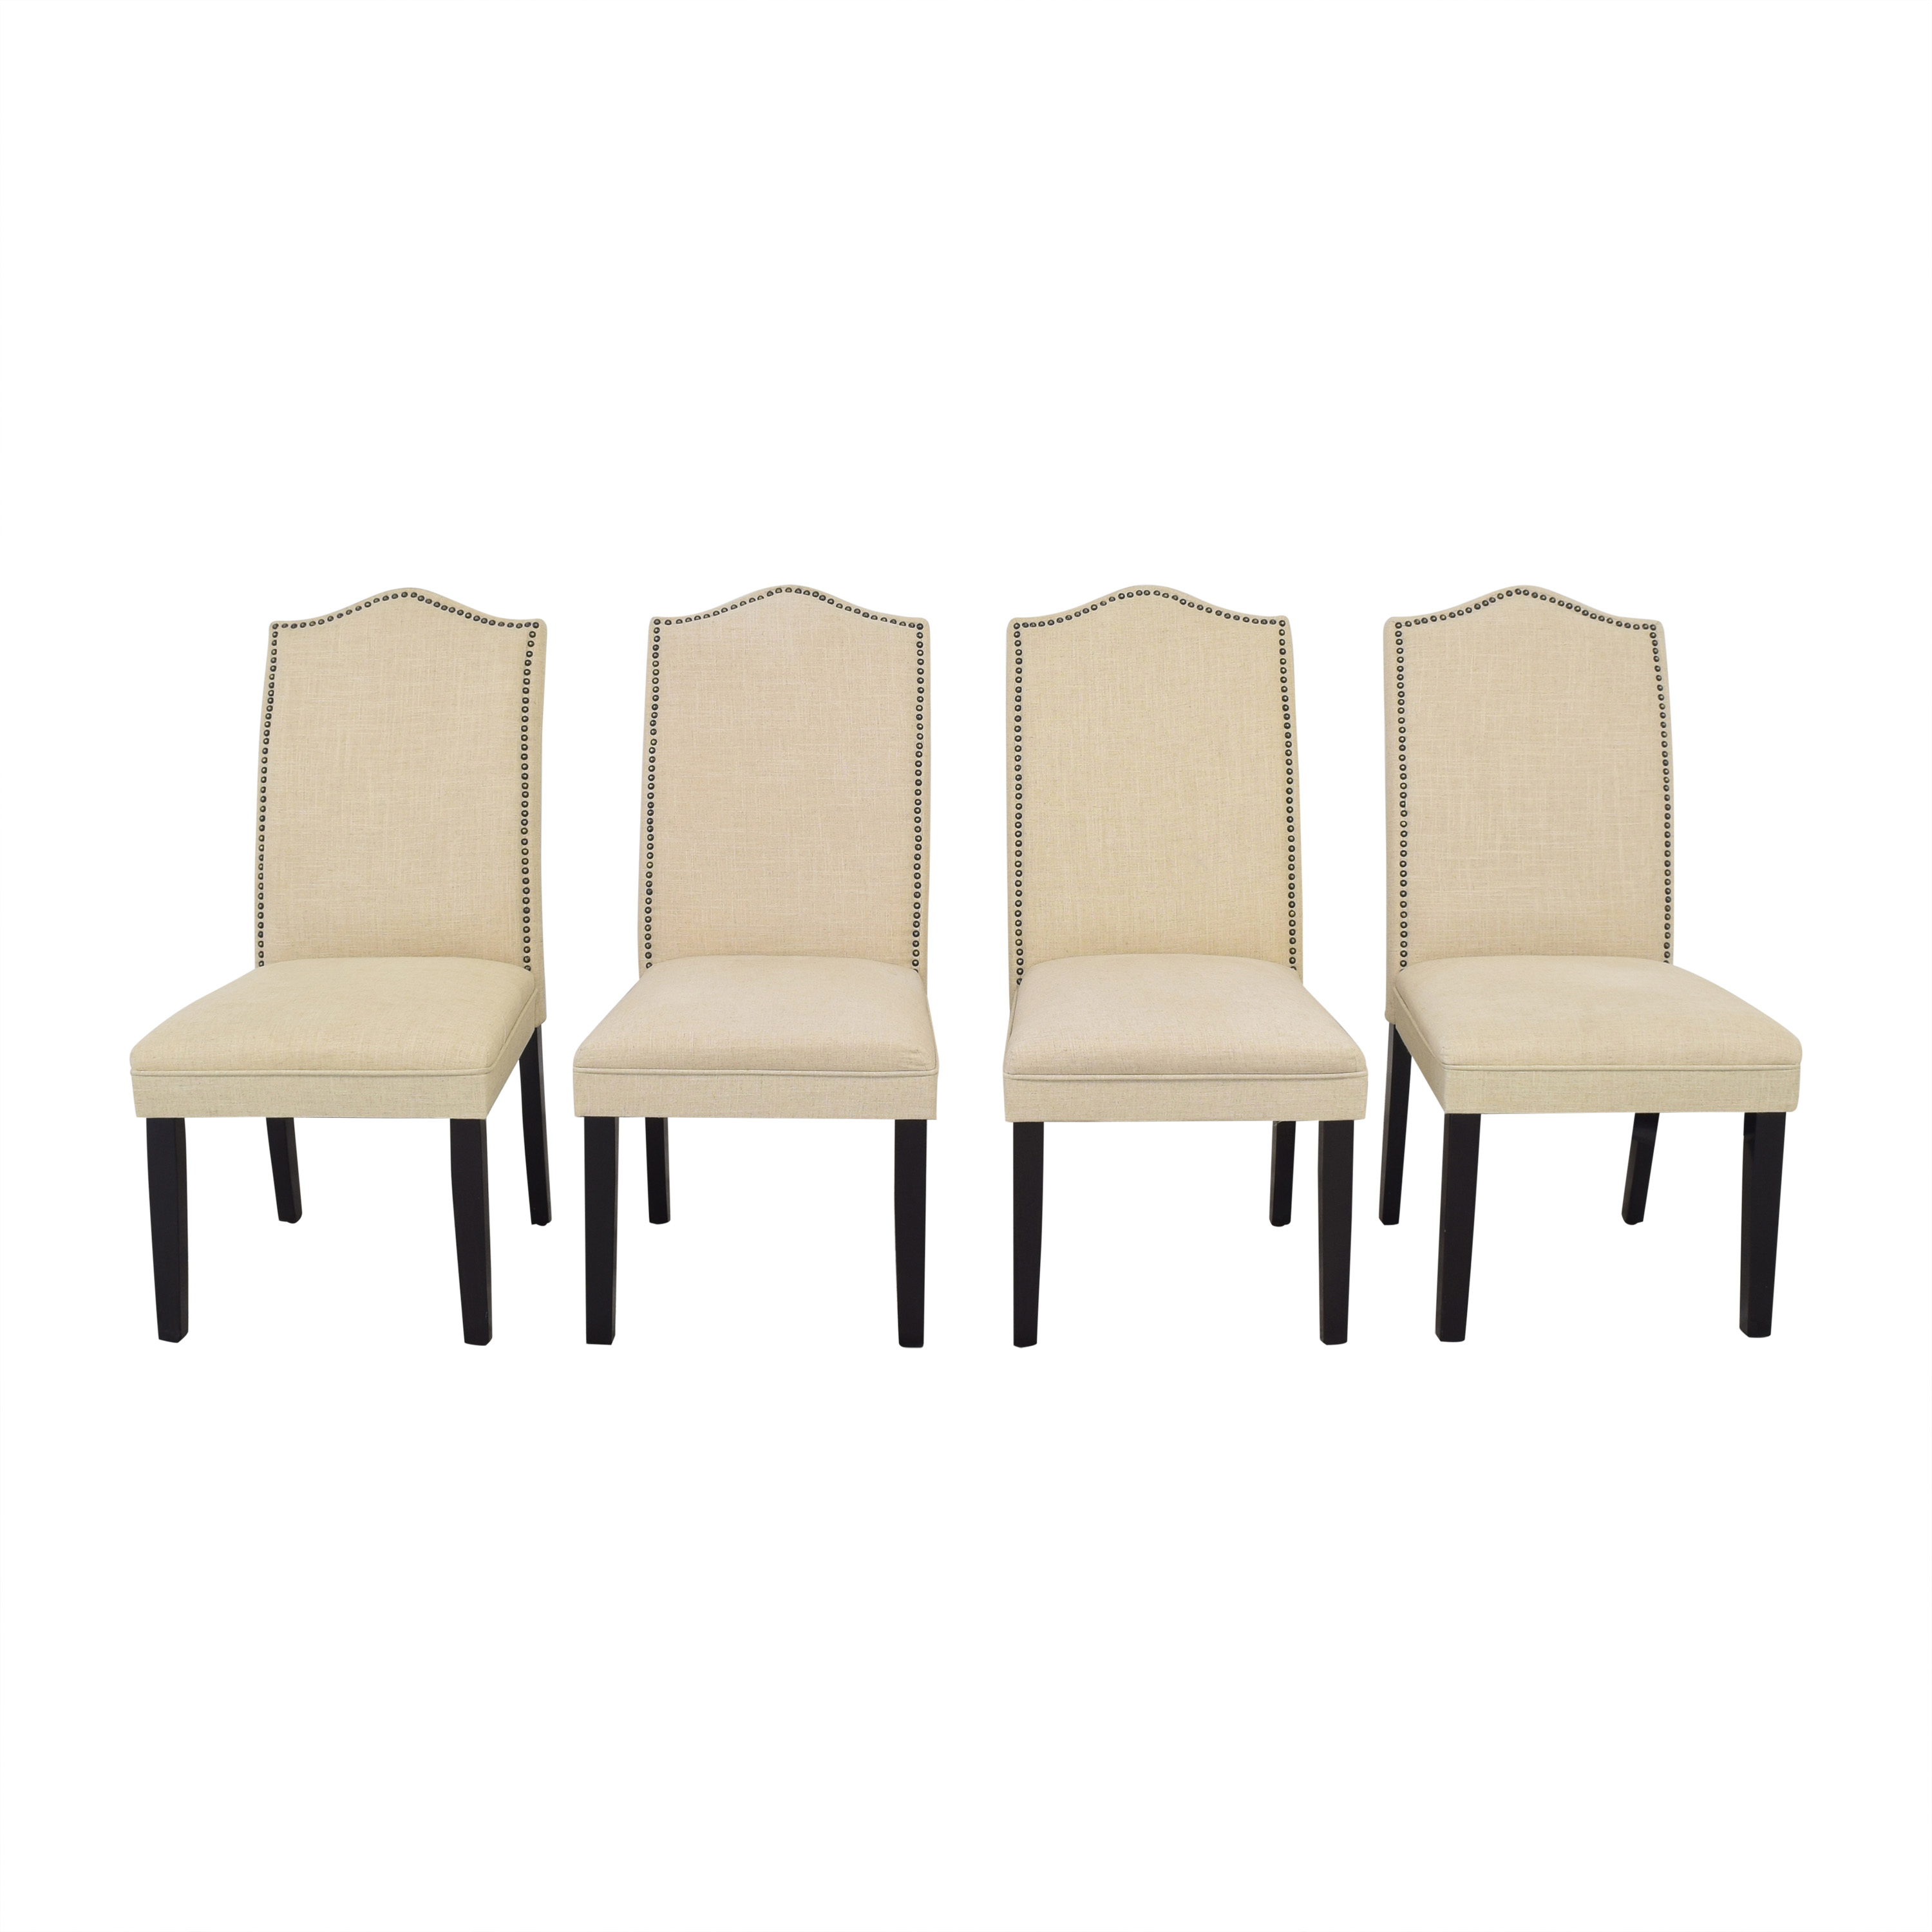 Wayfair Wayfair Maelynn Upholstered Dining Chairs